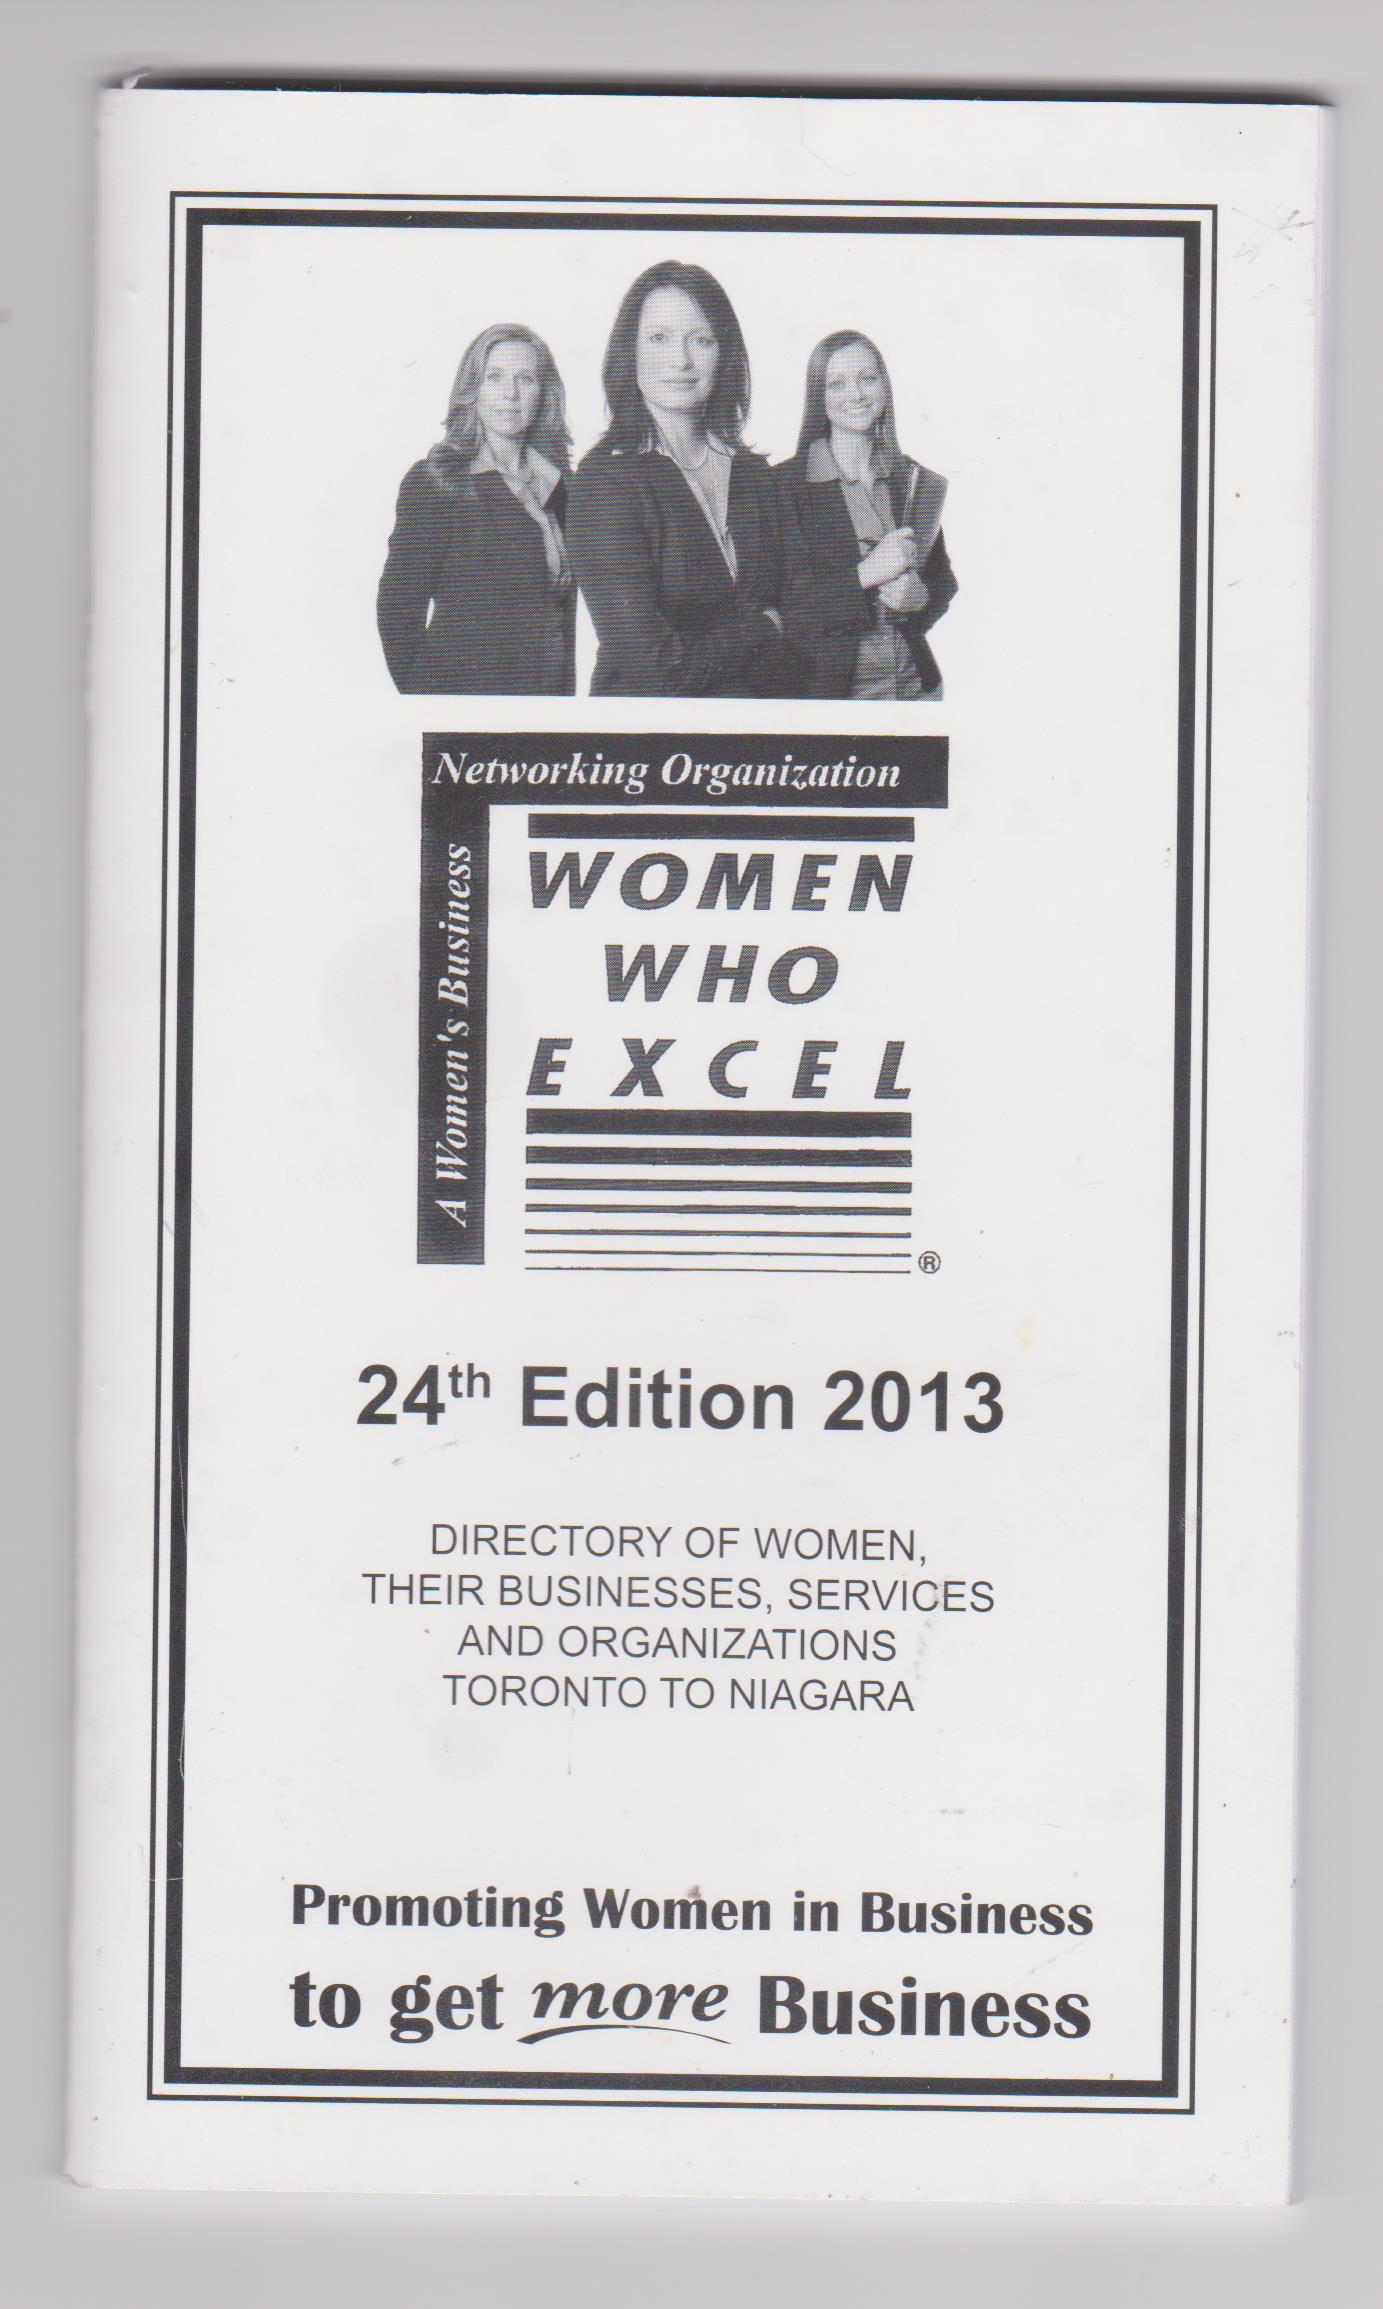 Christine Whitlock - WOMEN WHO EXCEL 24th Edition 2013